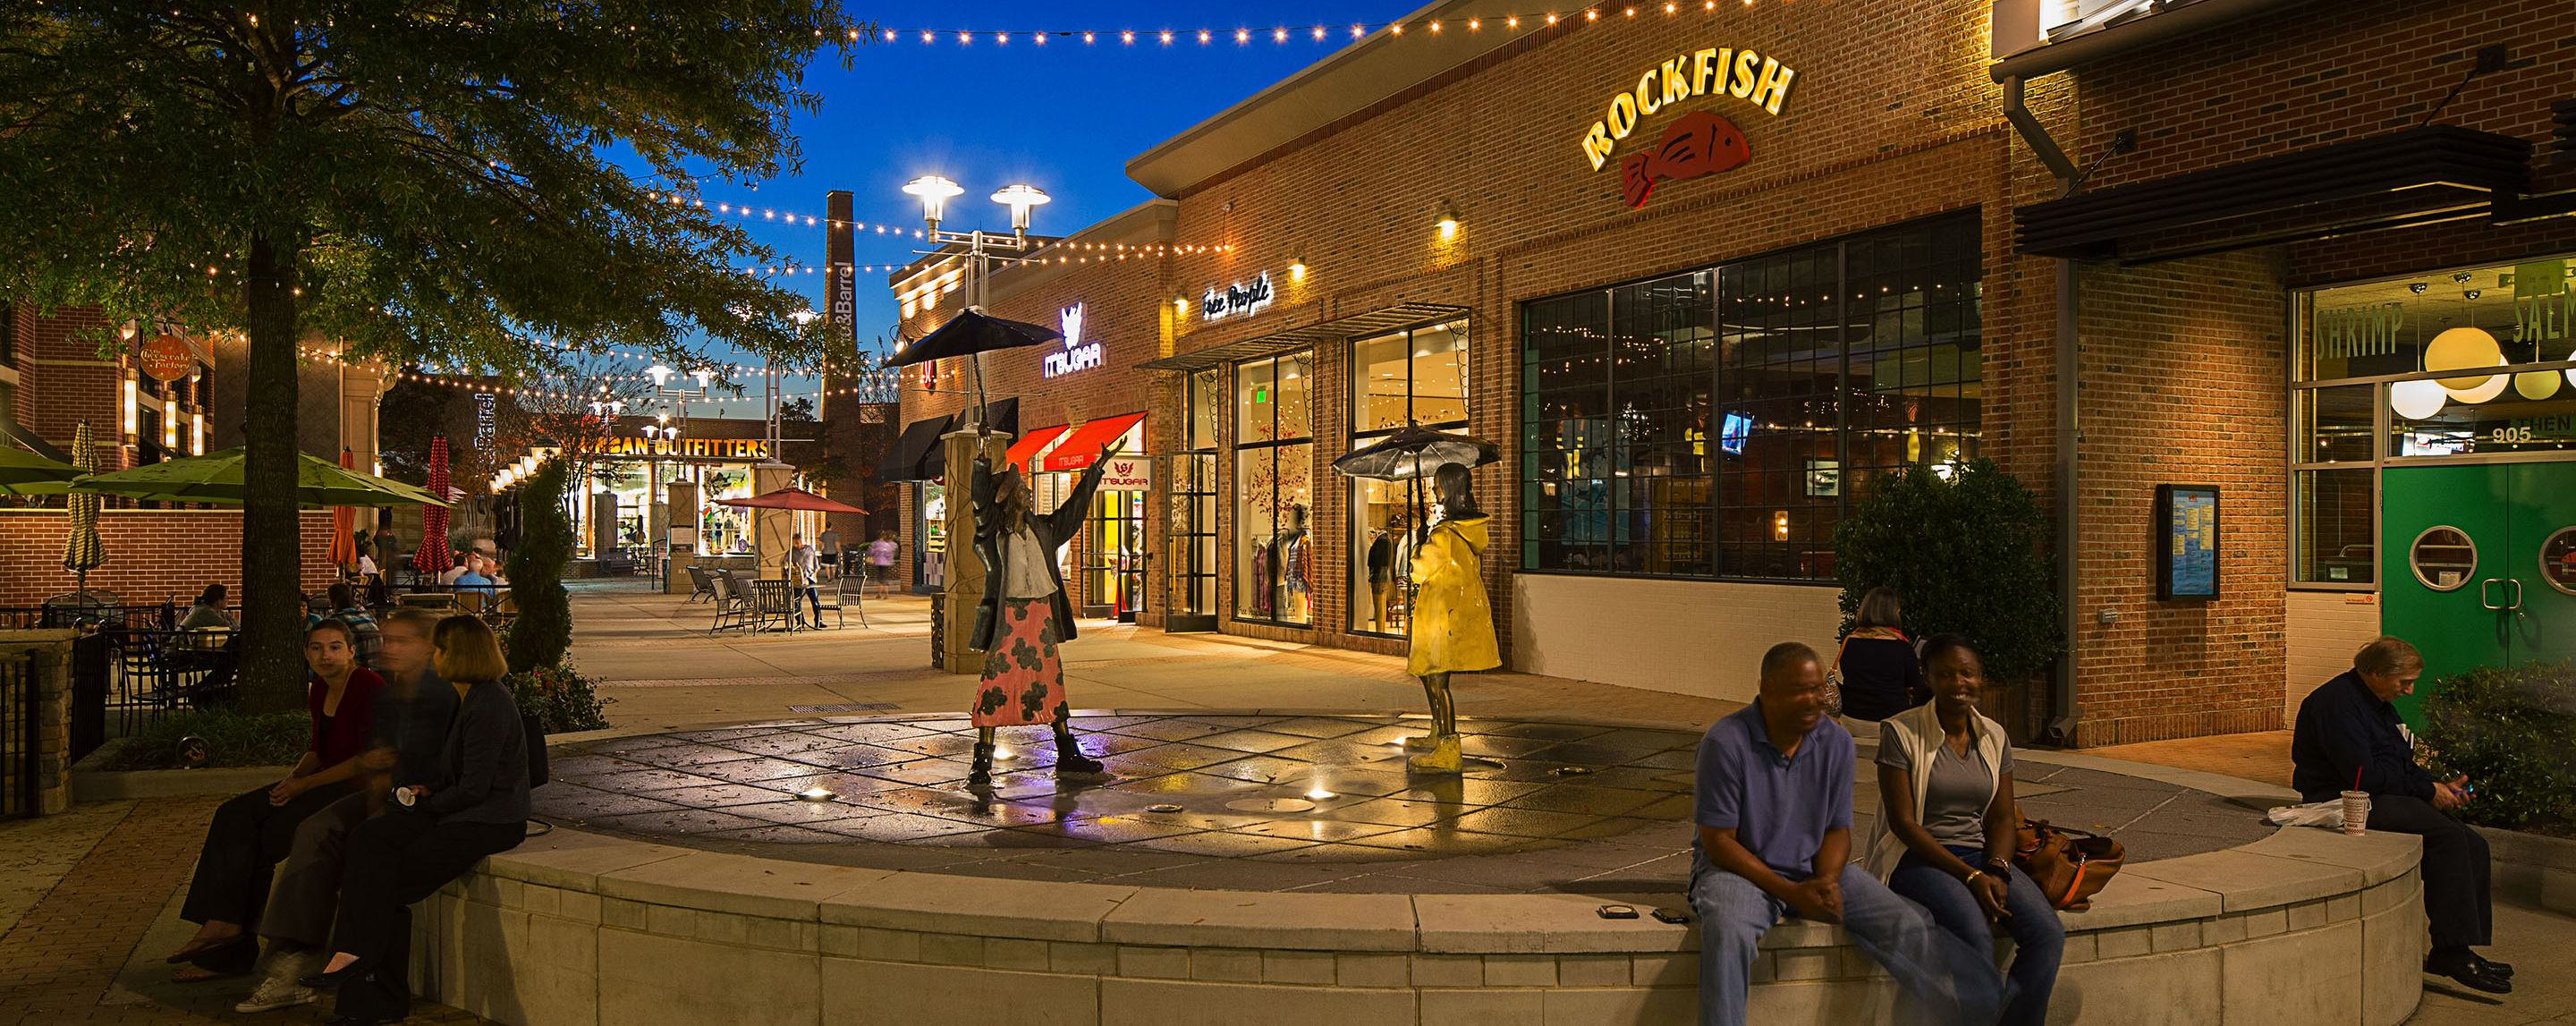 People sit and stand near a water feature outside of a stores near a shopping center.